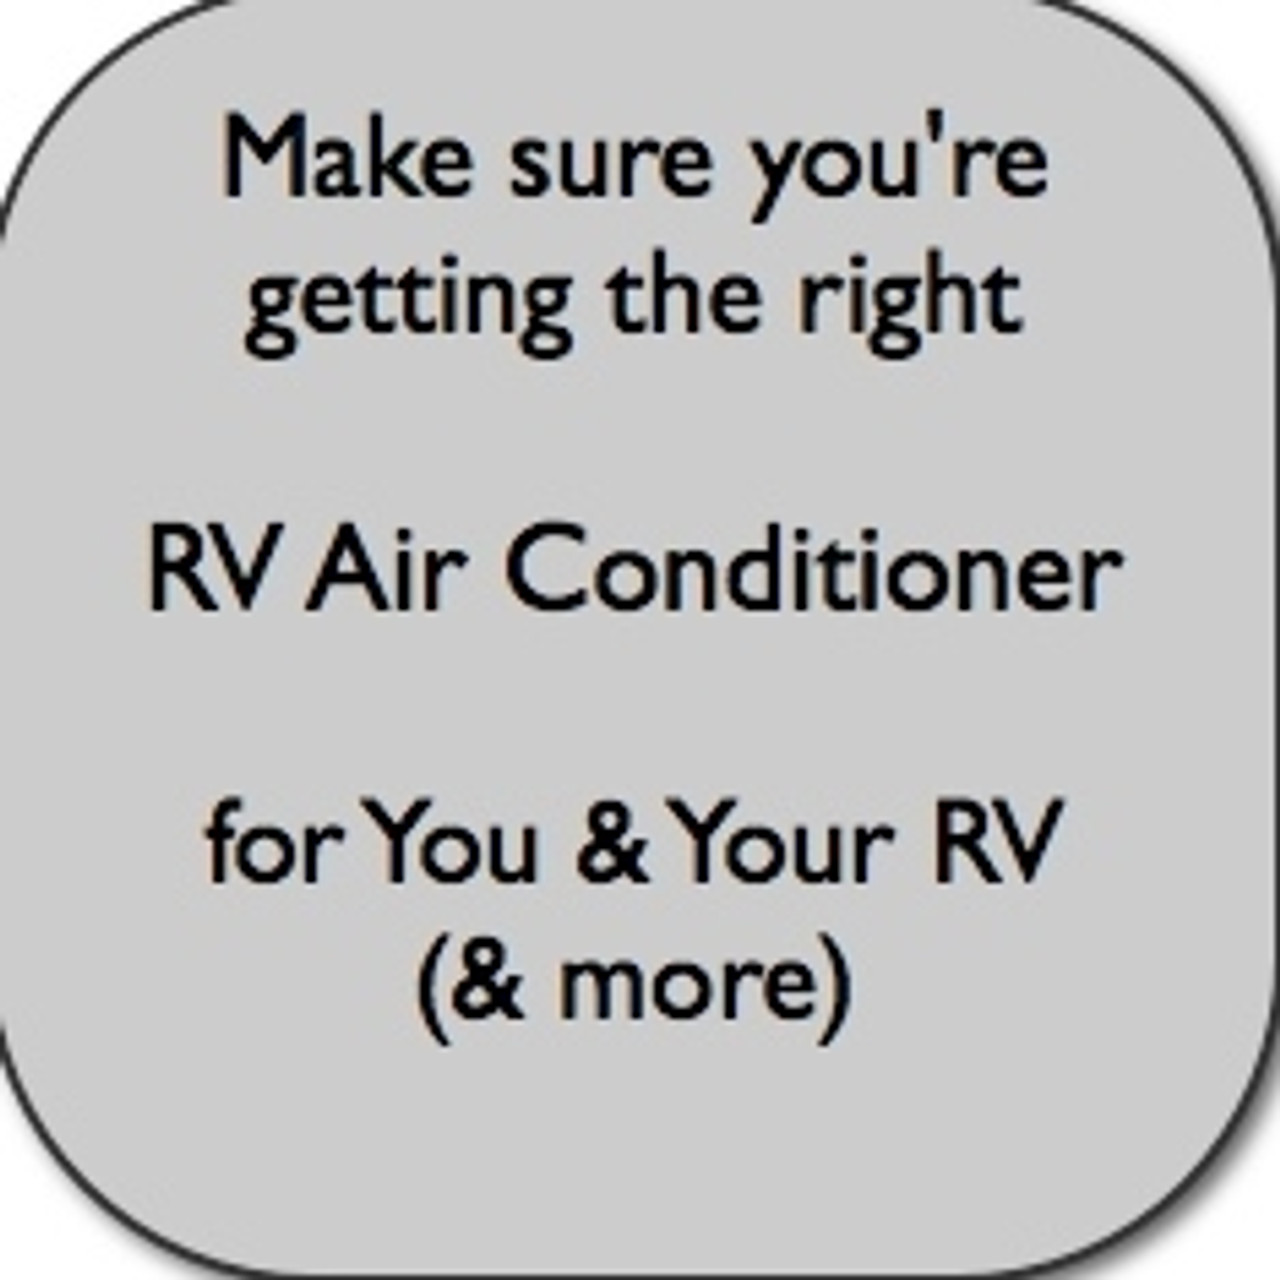 RV Air Conditioner, replacement or new